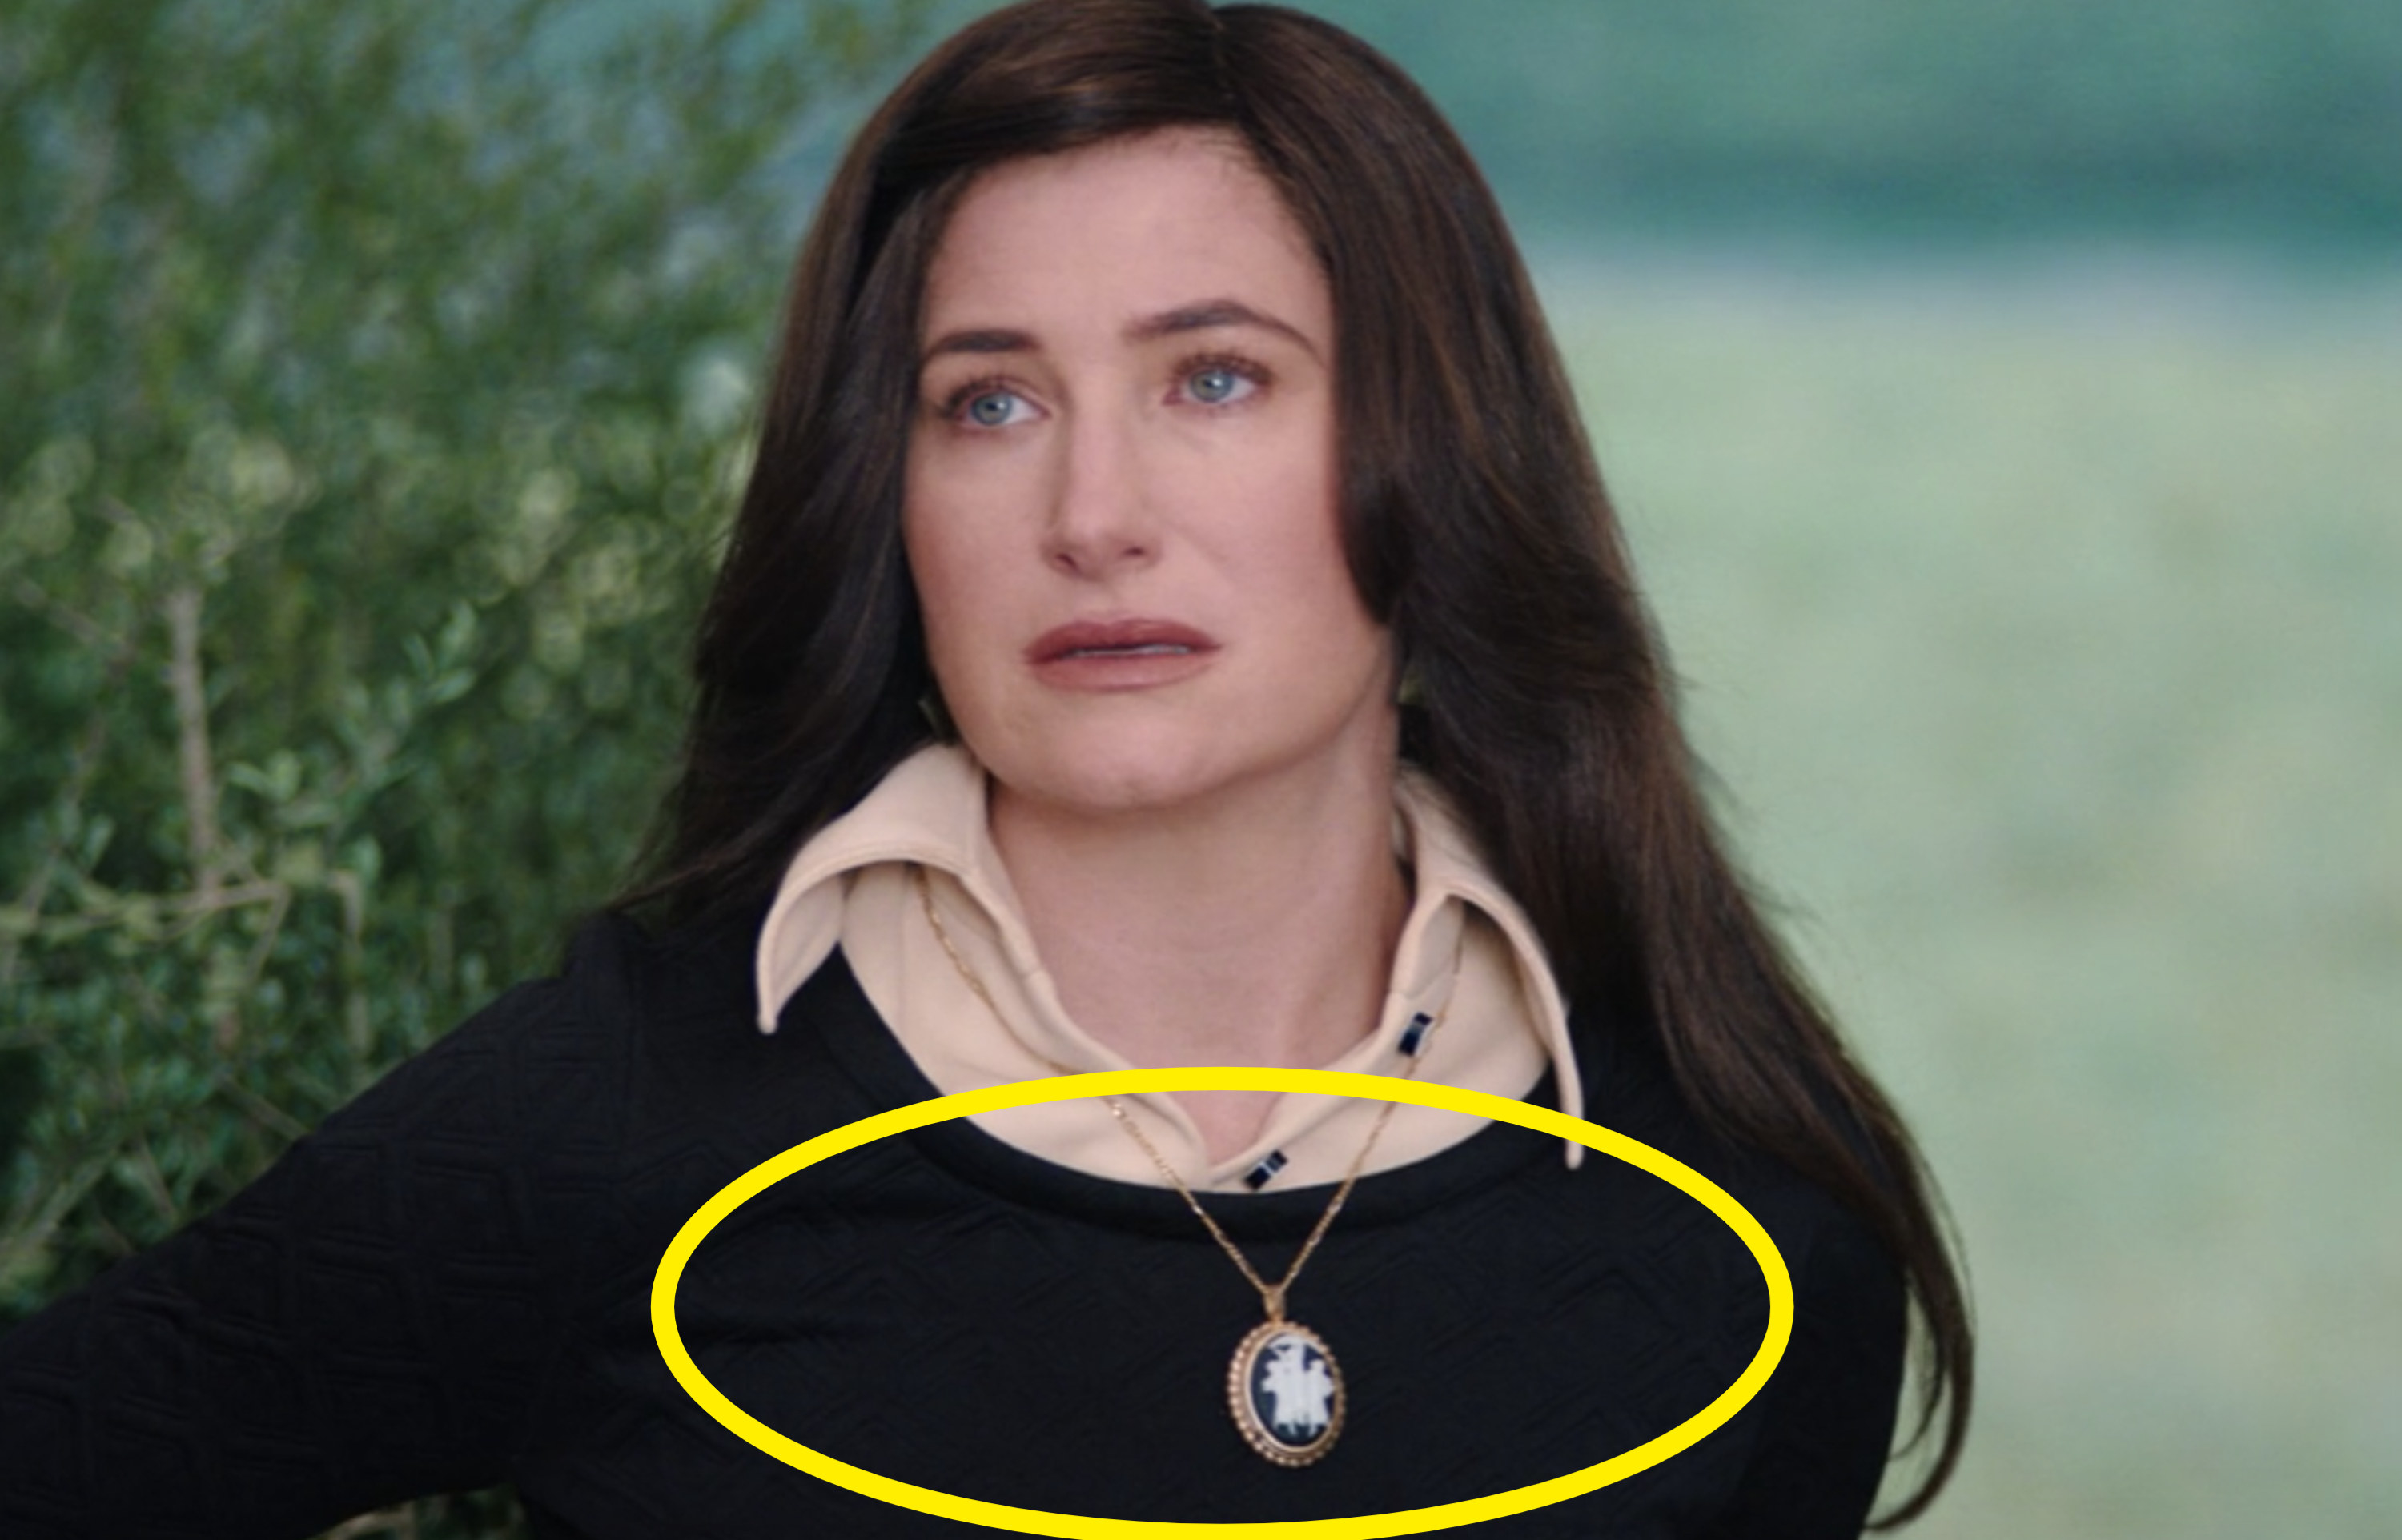 Agnes wearing a black sweater with a large broach on a necklace